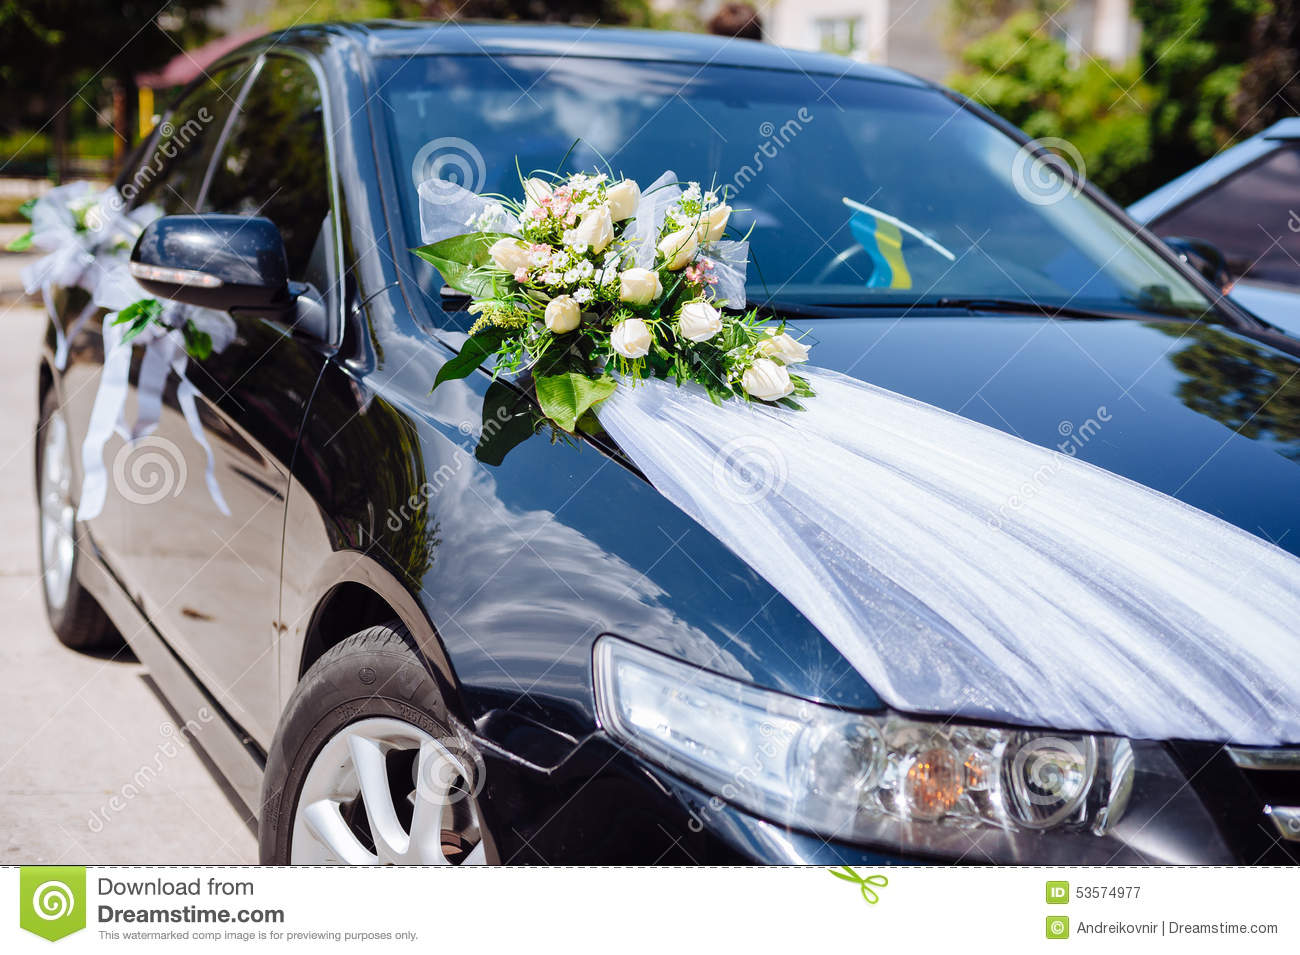 Wedding Car Decor Flowers Bouquet Car Decoration Stock Image